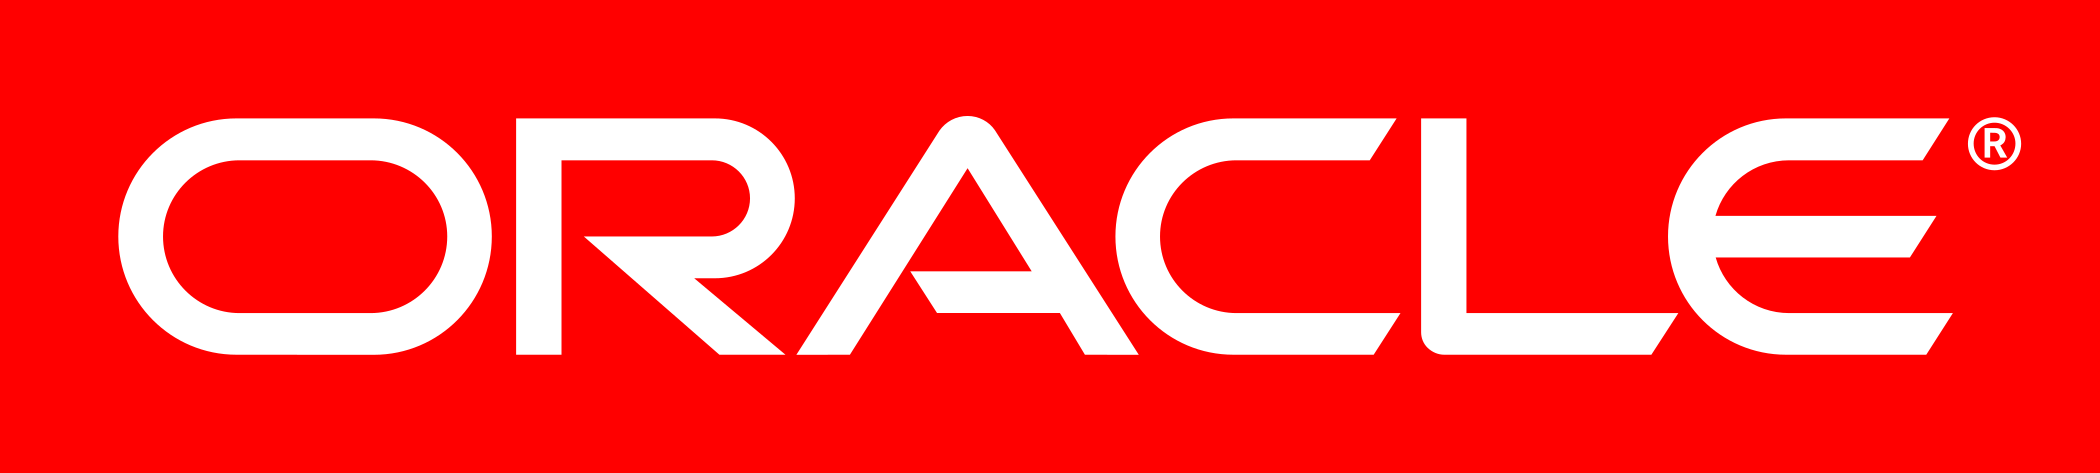 oracle logo 5 - Oracle Logo - Oracle Corporation Logo